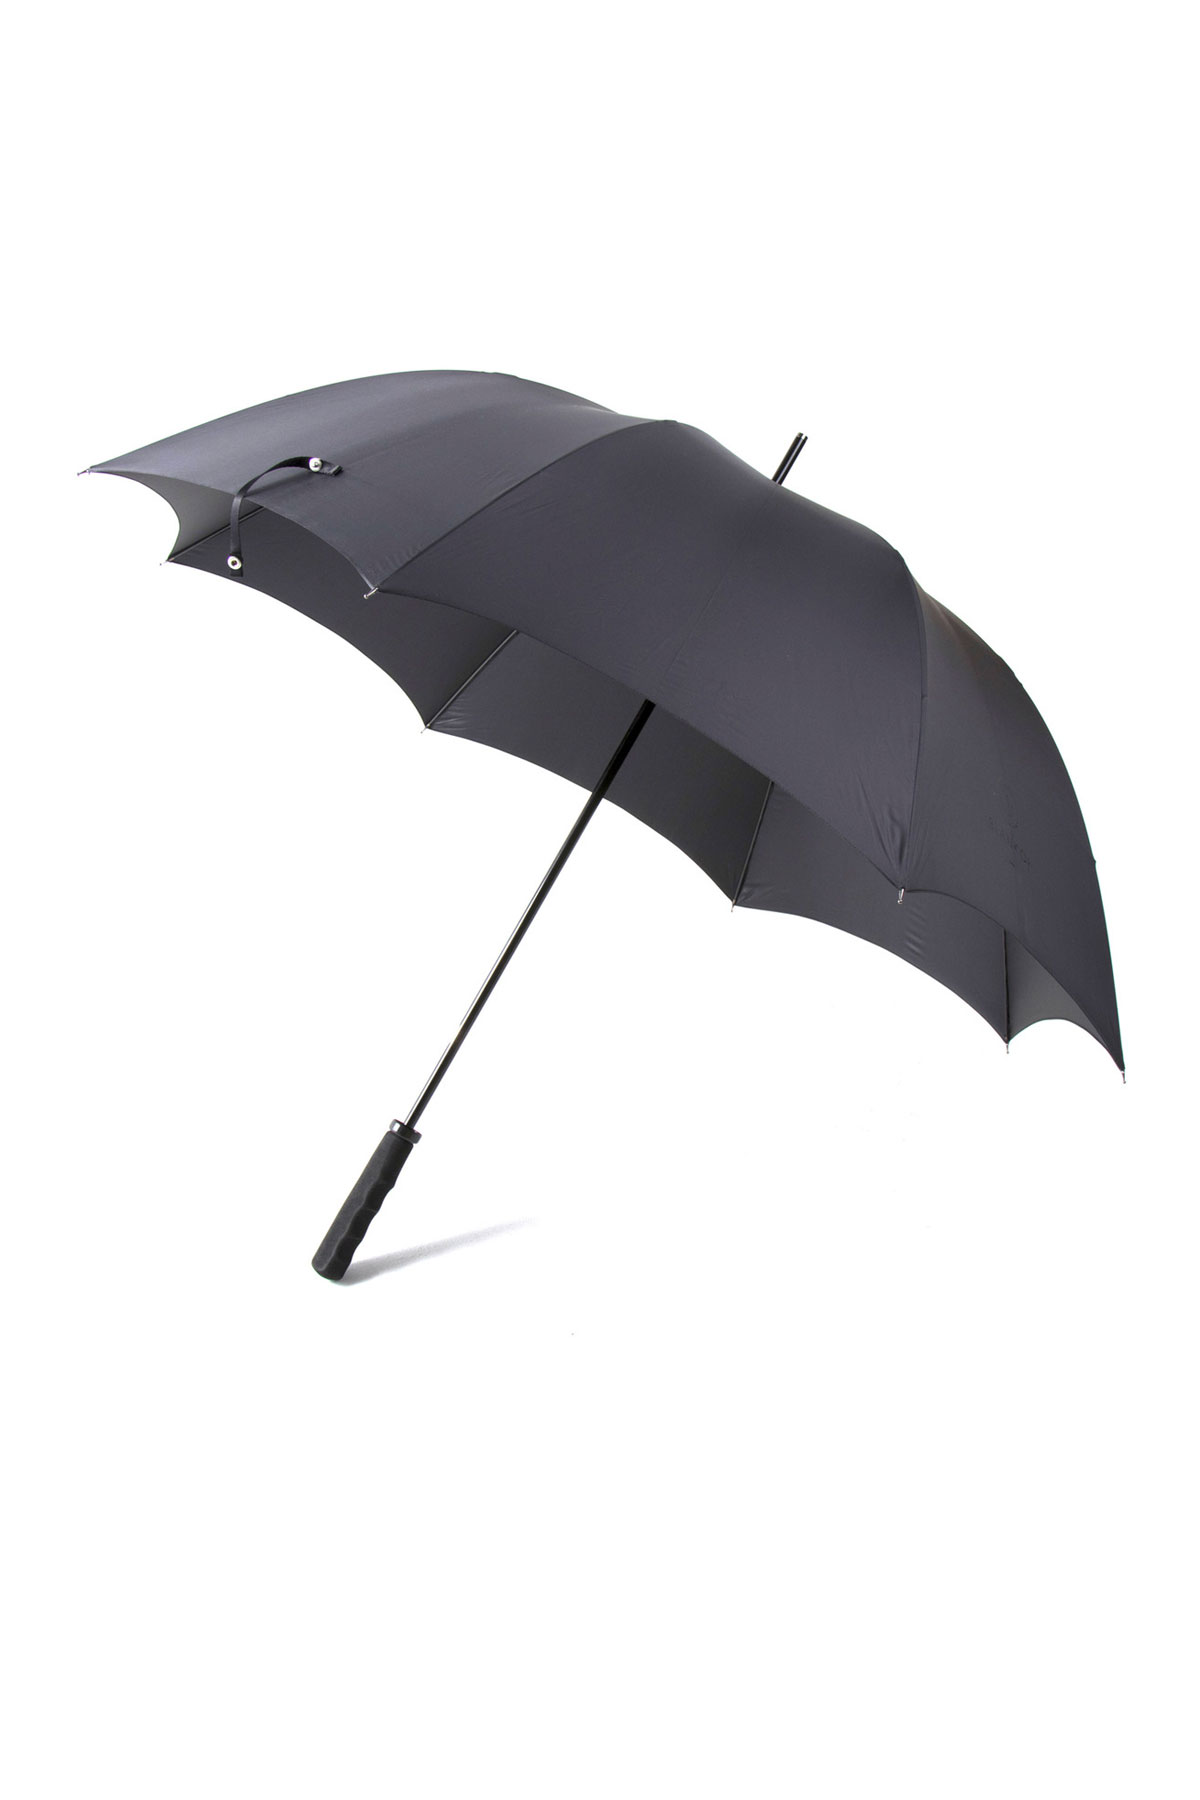 Blankof : UPE 01 70 Ultralight Carbon Fibre Umbrella (Black)